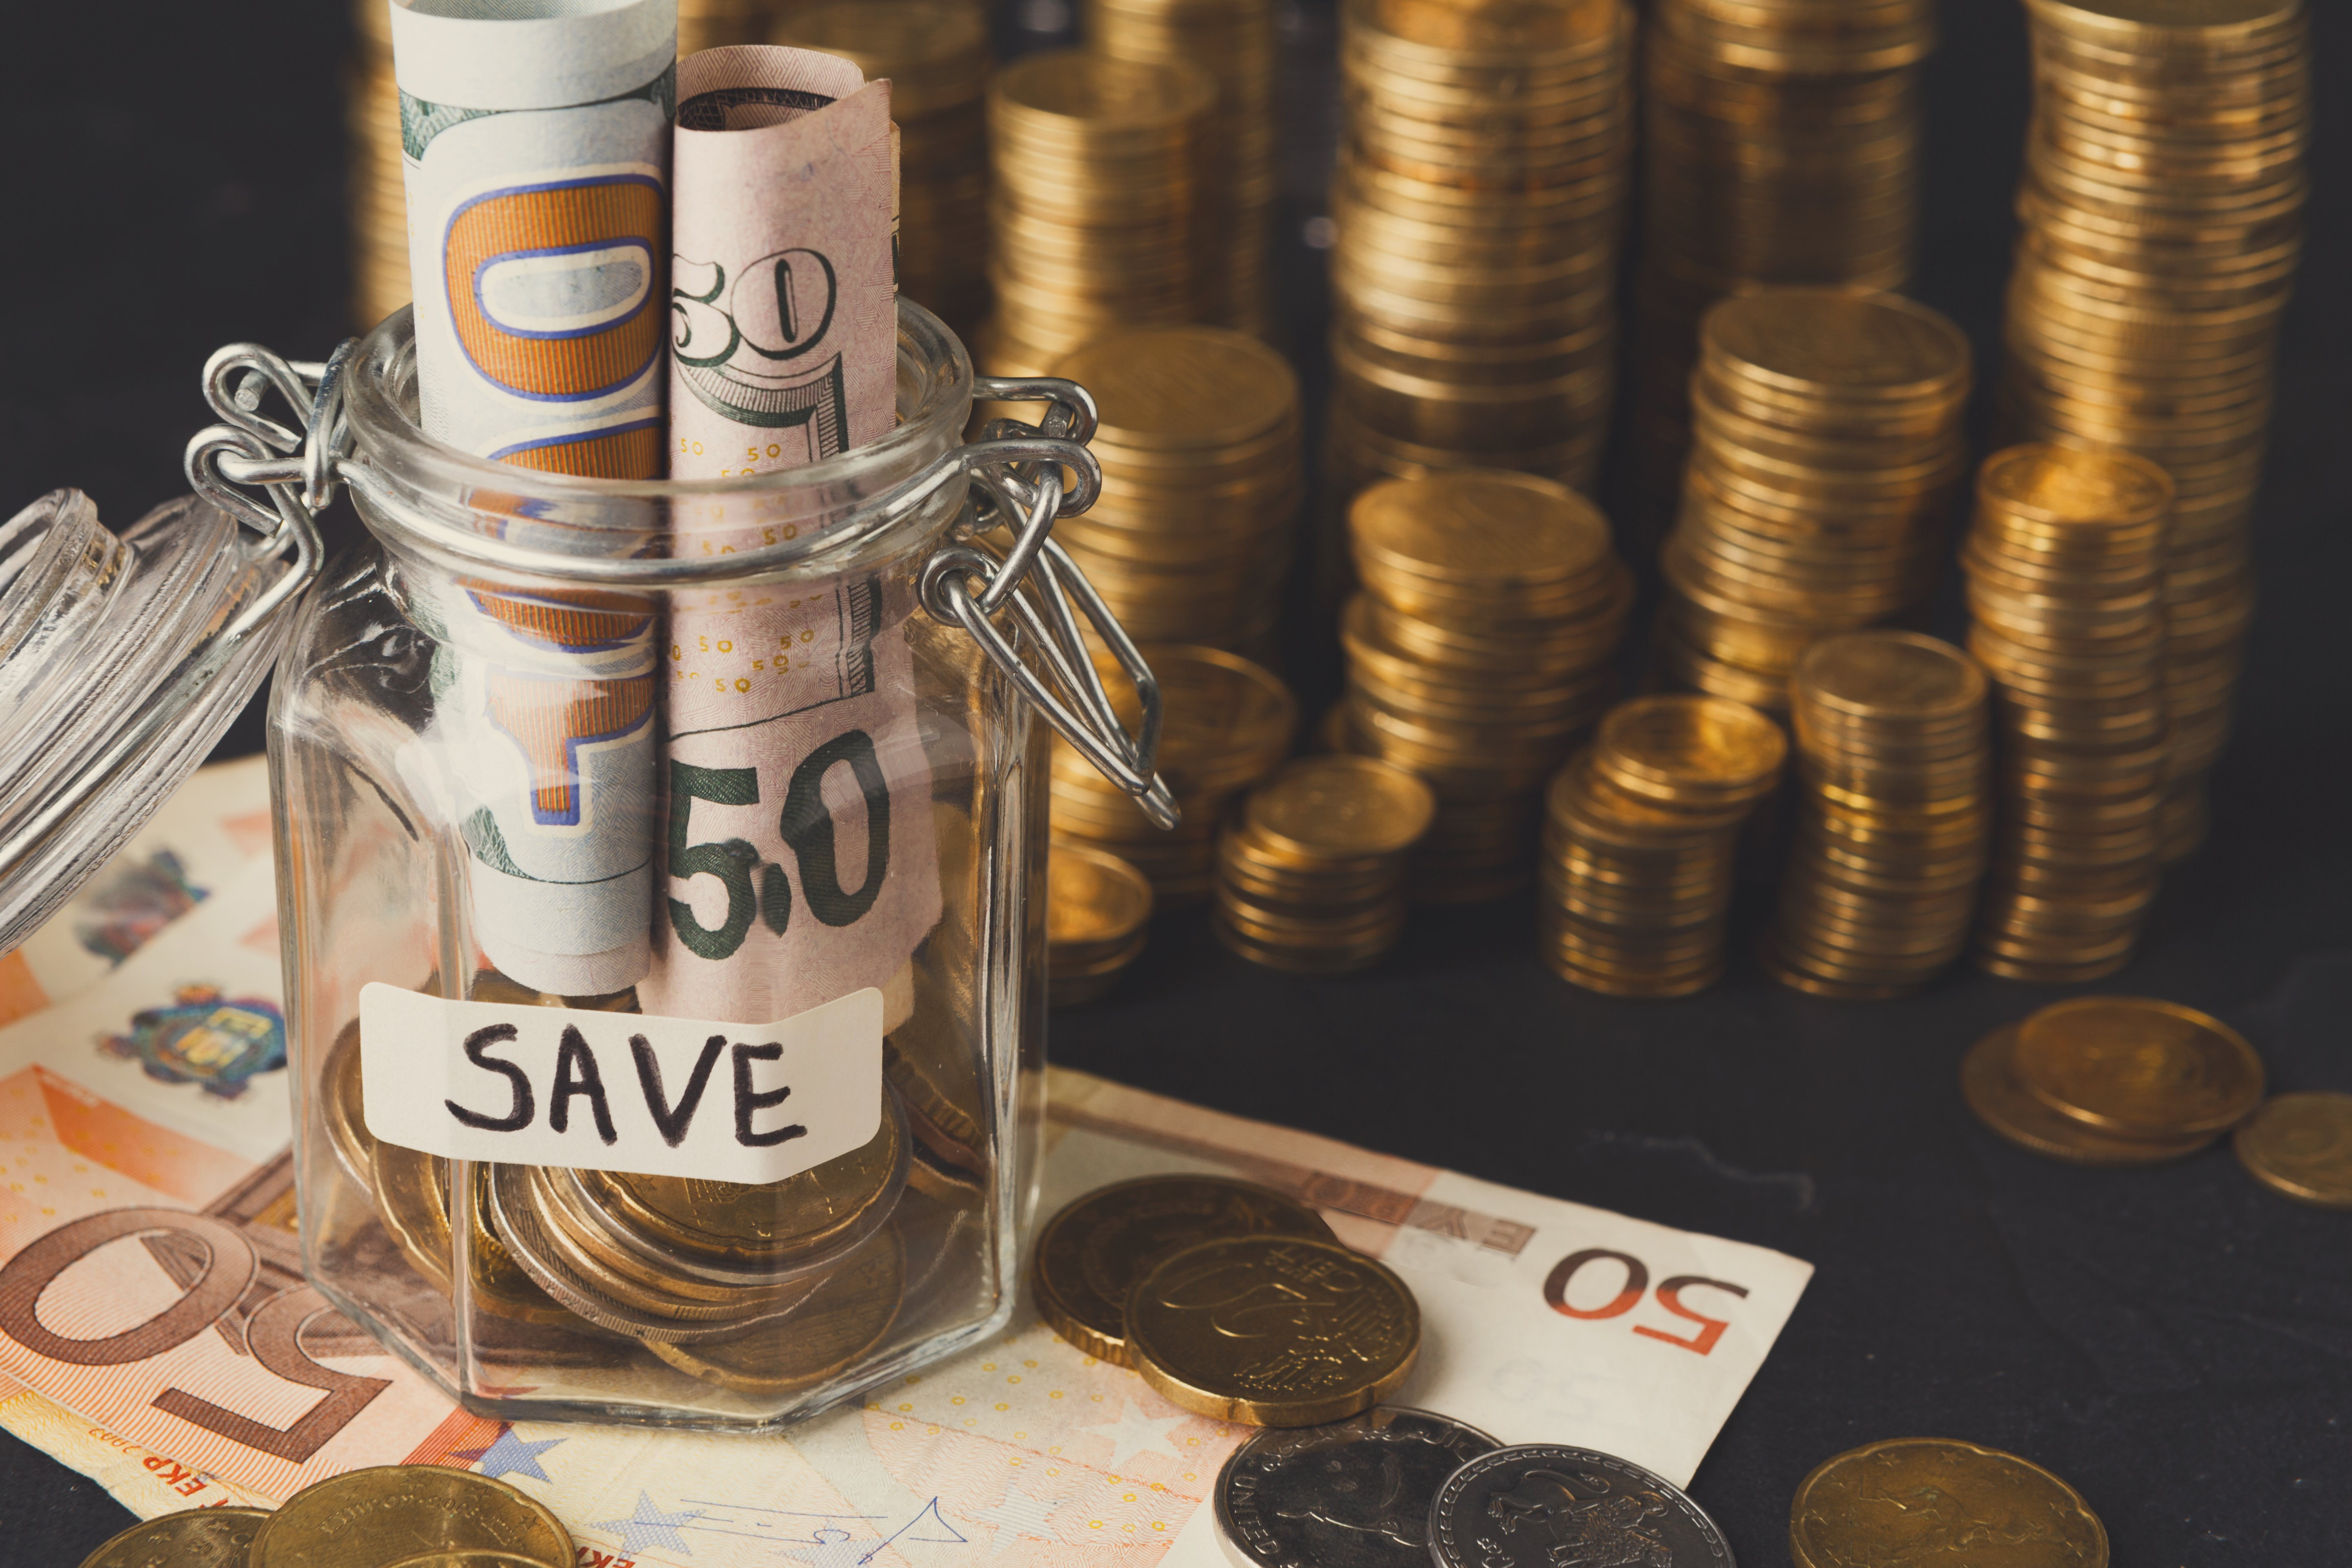 Canva - Coins in glass jar for money saving, copy space